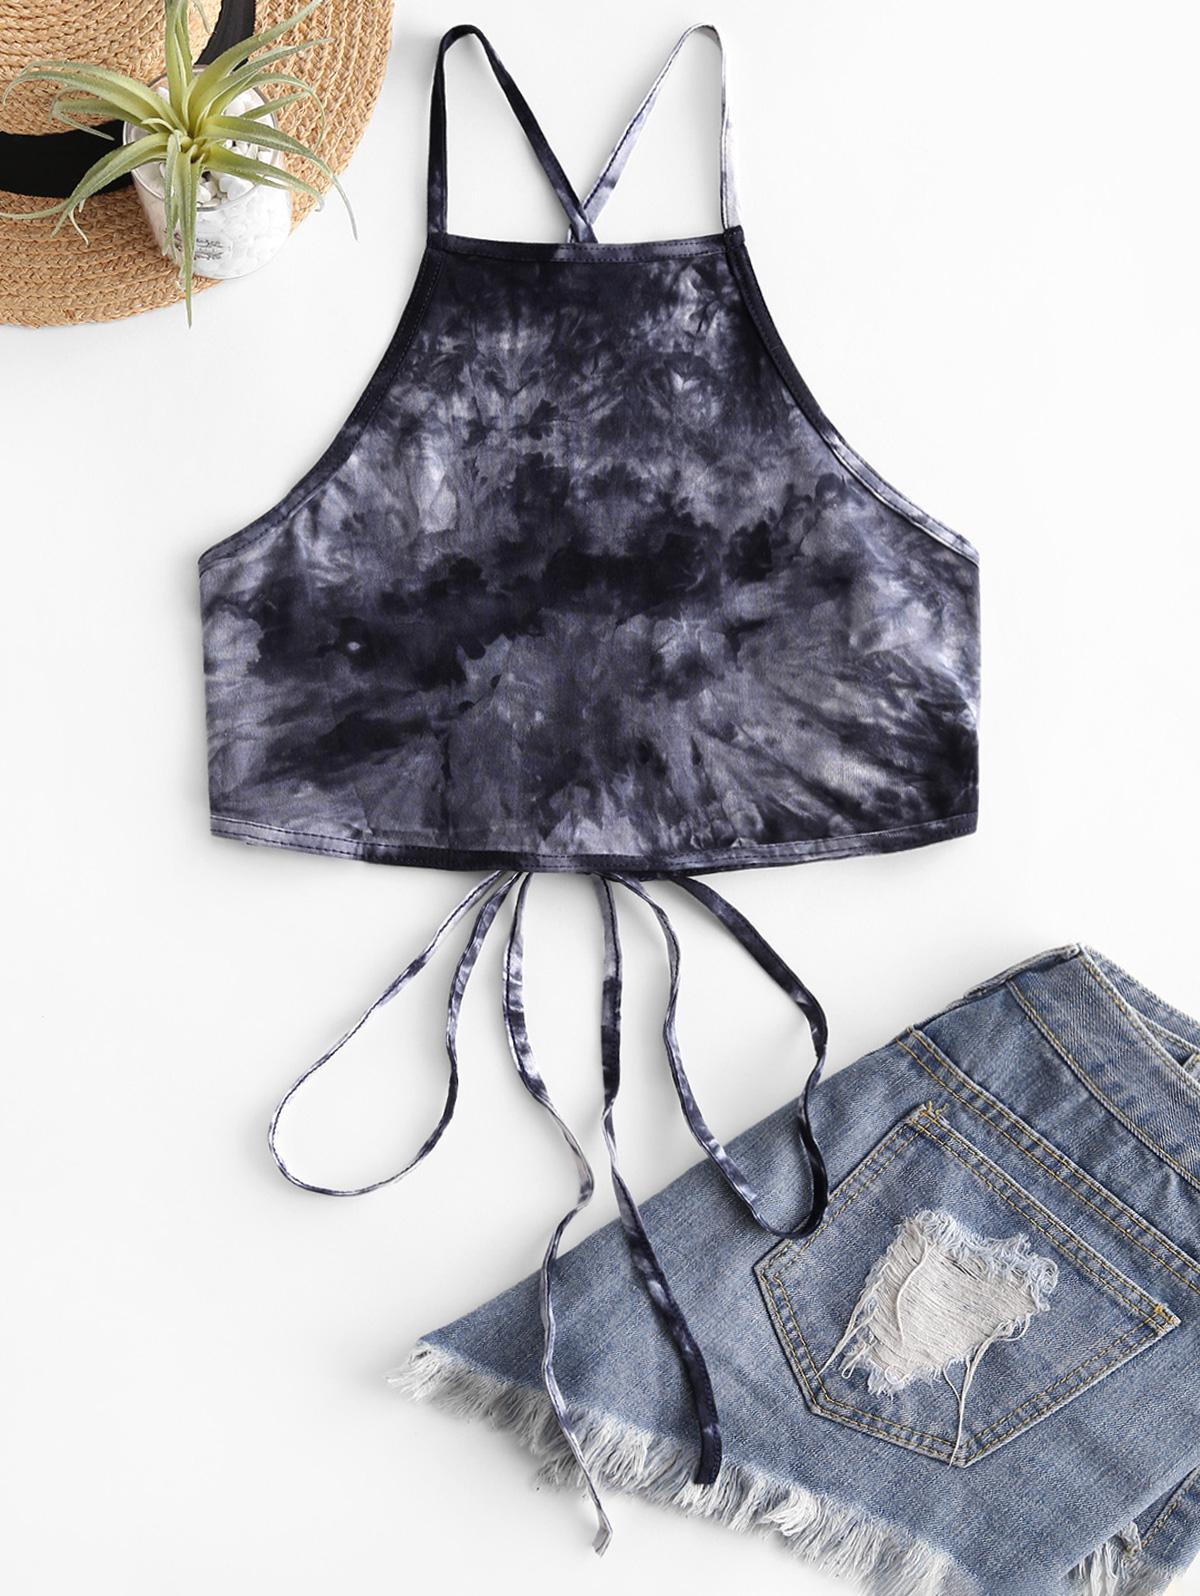 Lace Up Criss Cross Heathered Tie Dye Crop Top